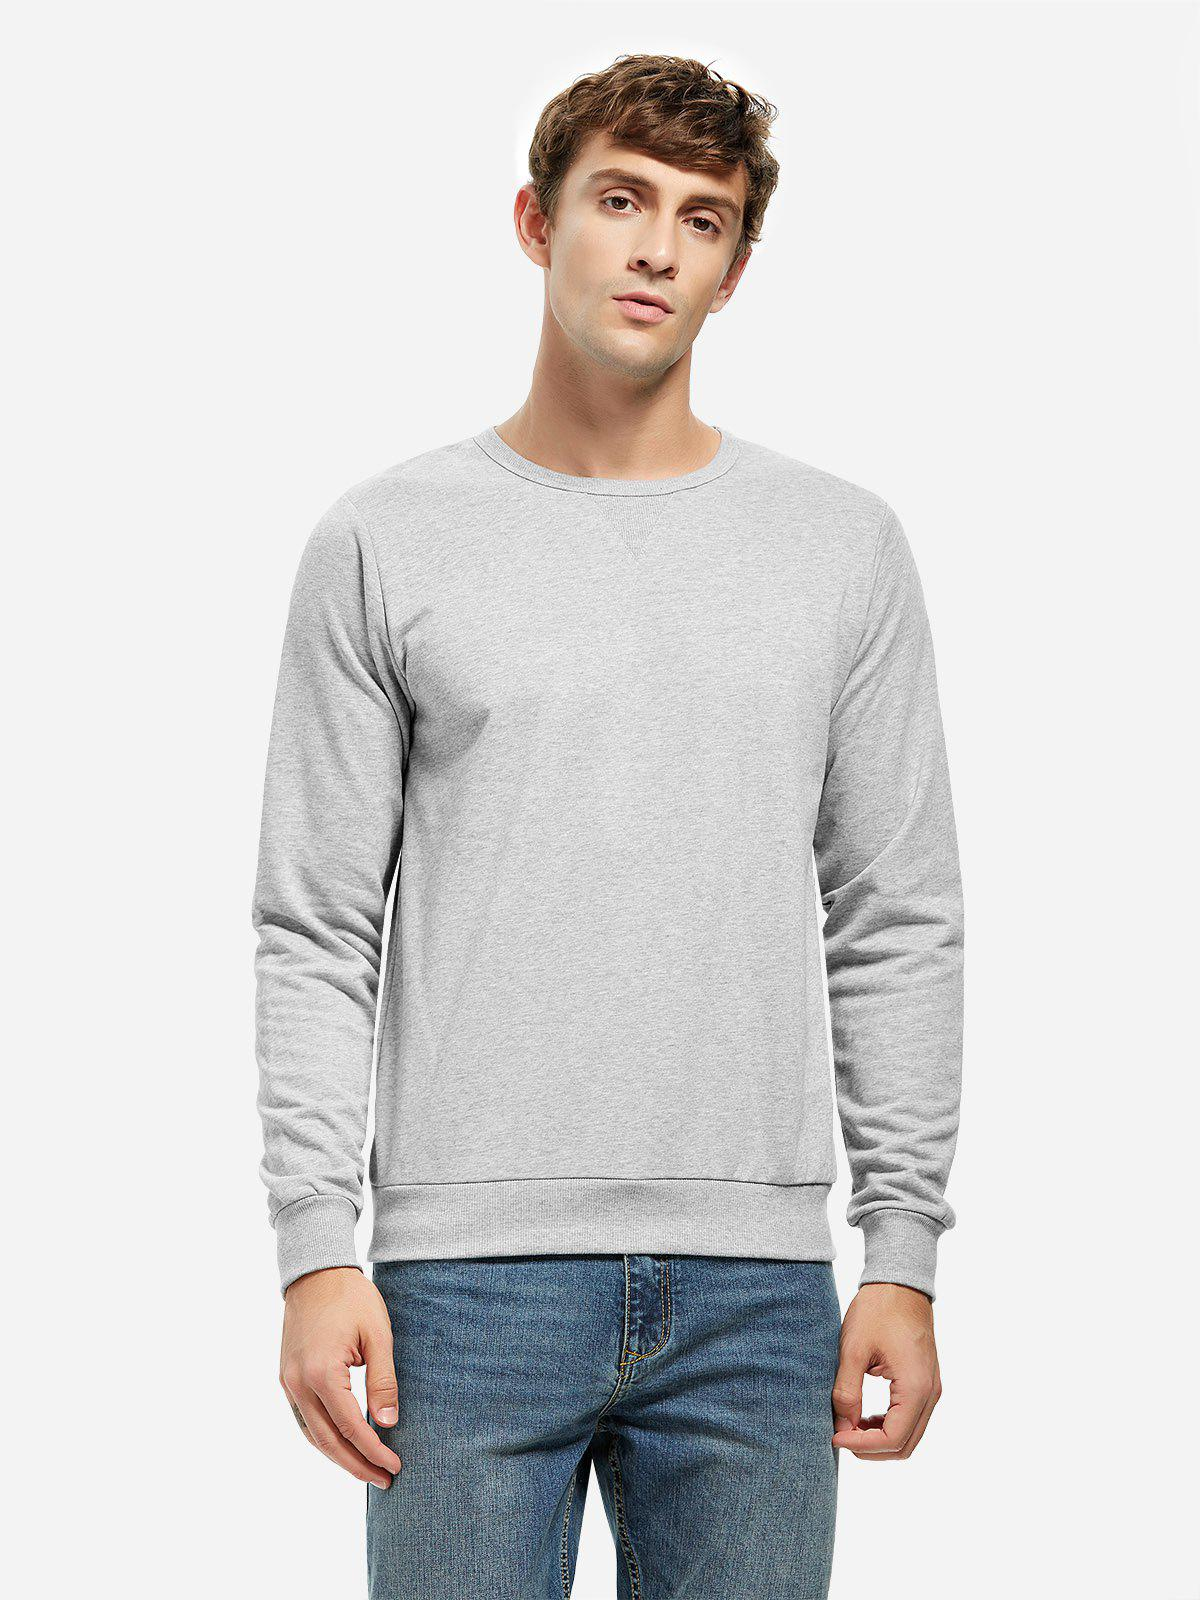 ZAN.STYLE Crew Neck Sweatshirt - LIGHT GRAY XL